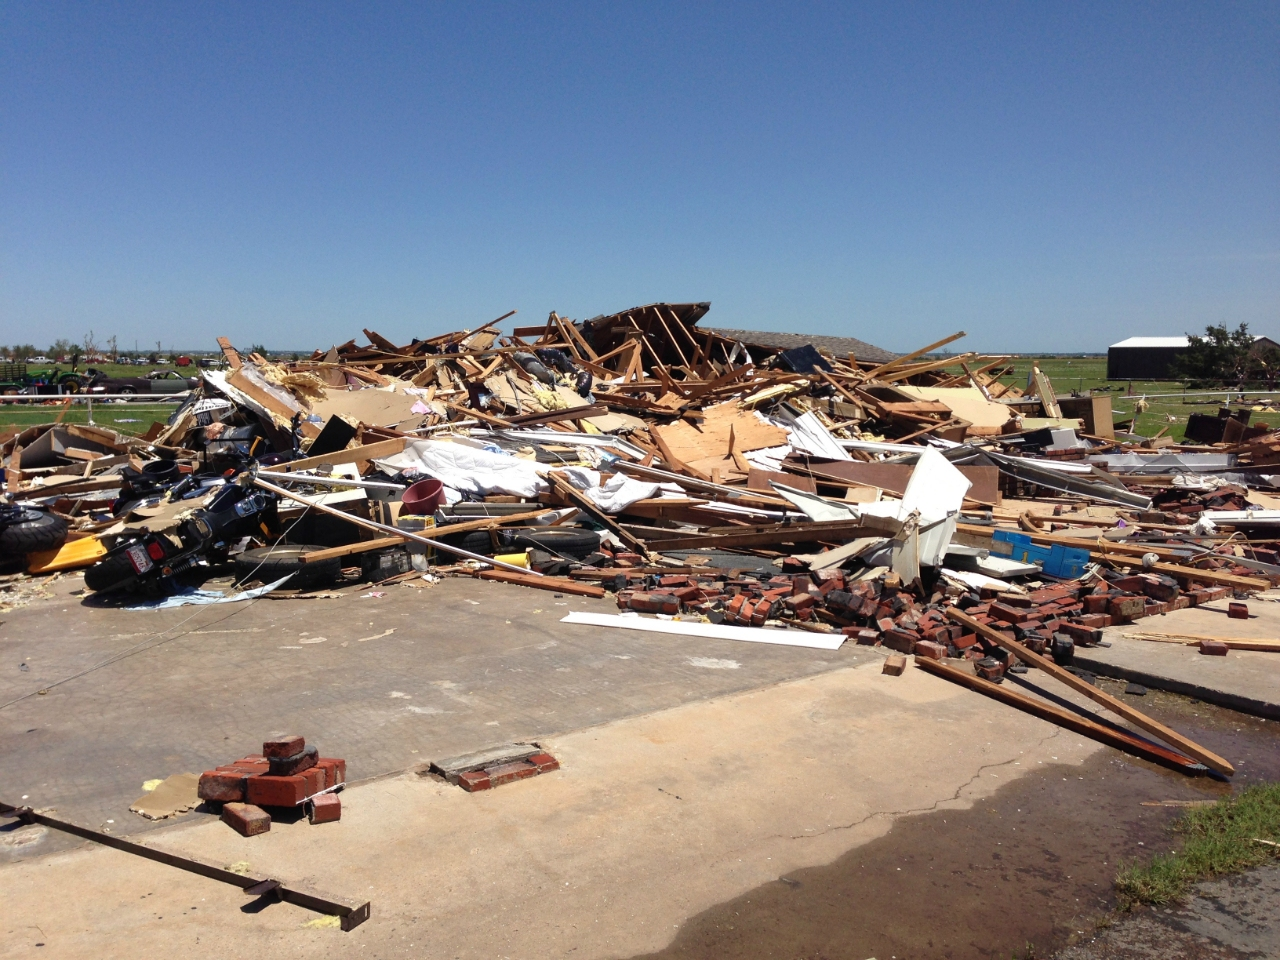 May 31, 2013 El Reno, OK Tornado Damage Photo